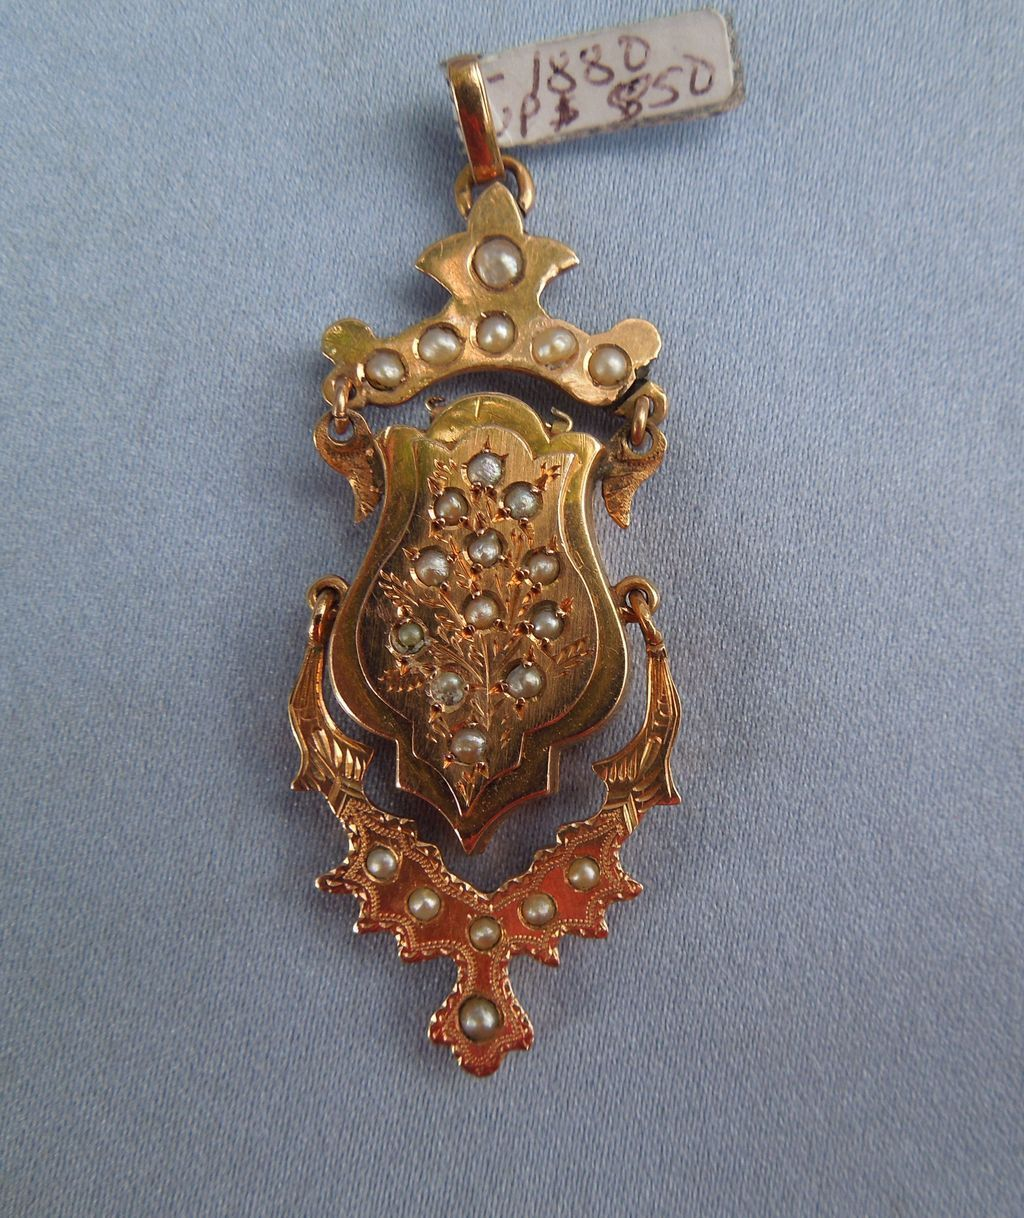 18 ct, Victorian Locket With Pearls